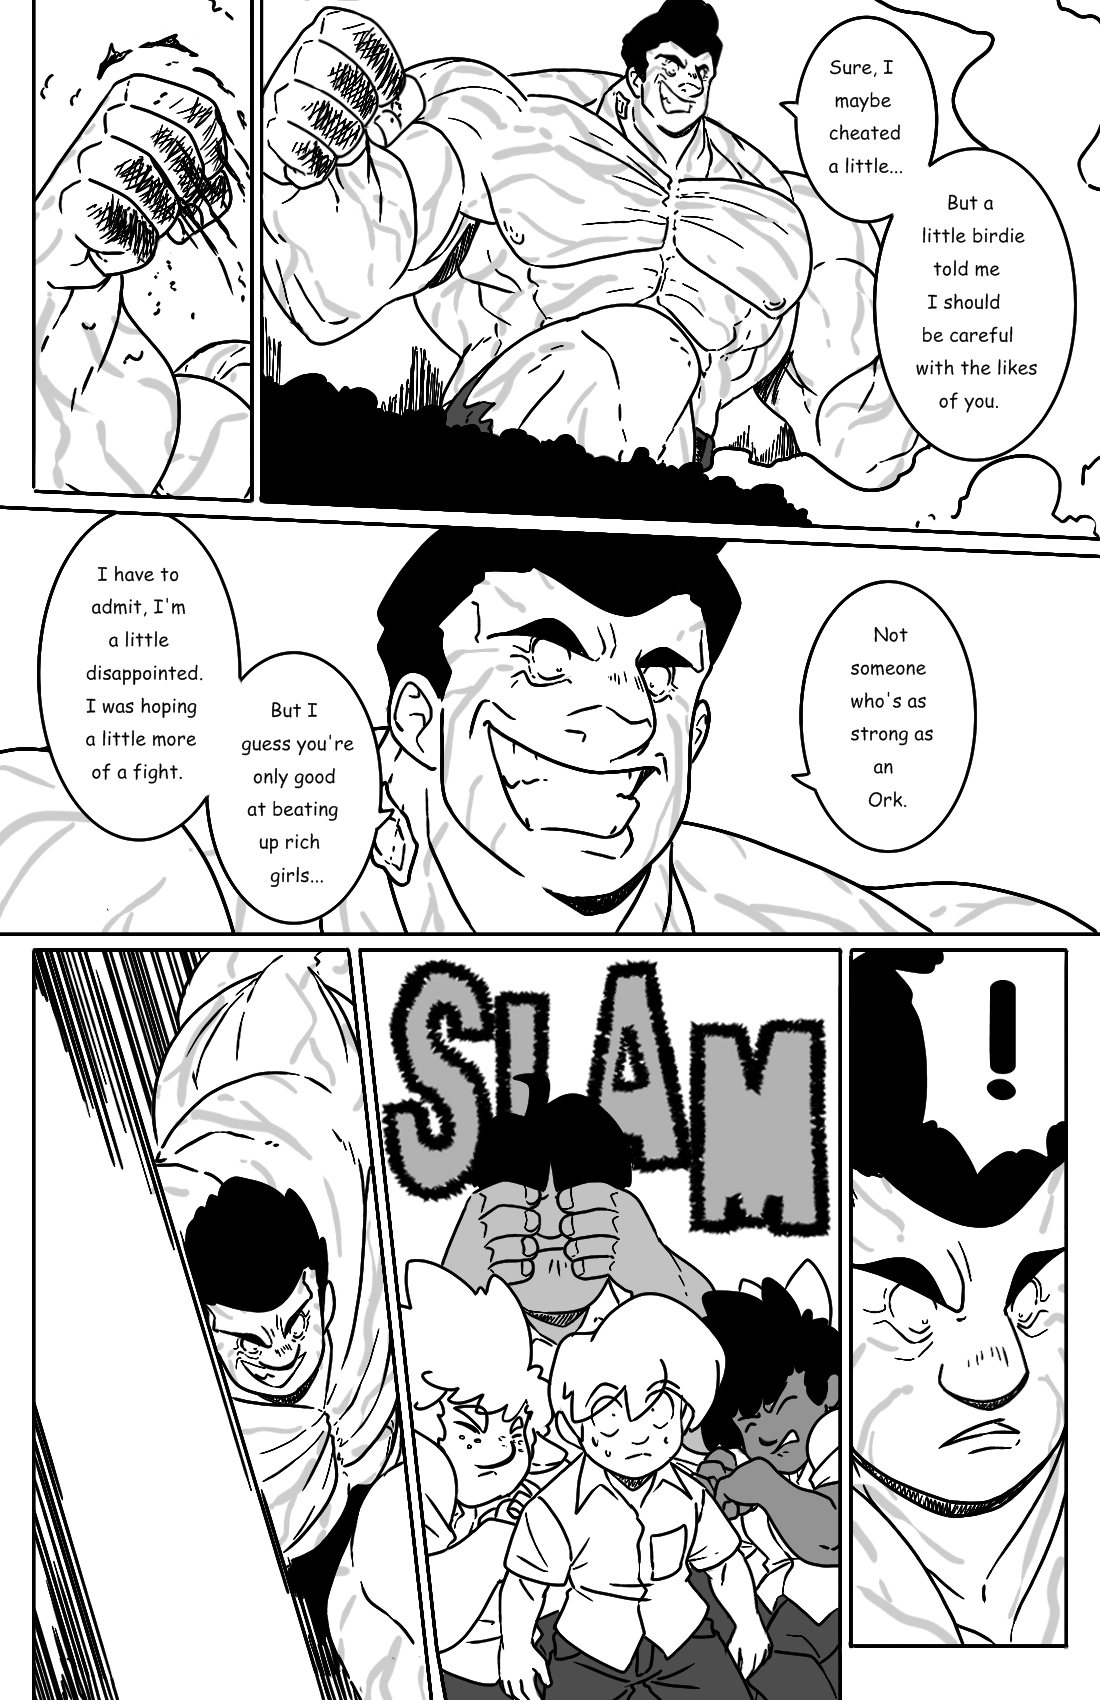 Bully Bully Part 3 pg.11